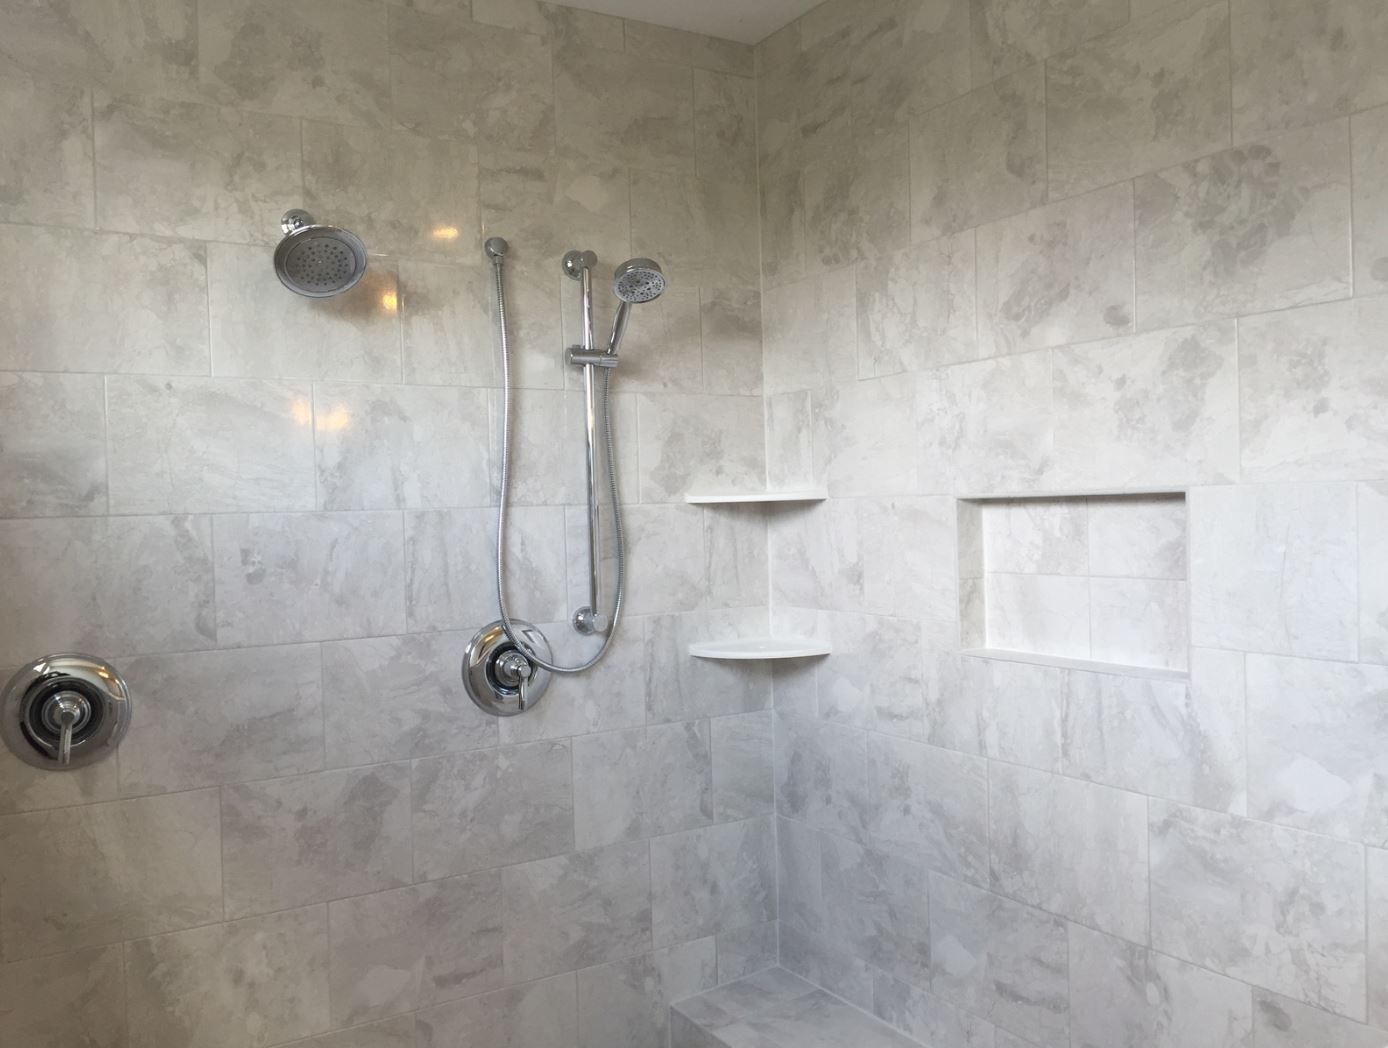 Wall Tile Marble Falls Ma40 10x14 White Waters Horizontal Brick Joint Master Shower Tile Tile Bathroom Marble Falls